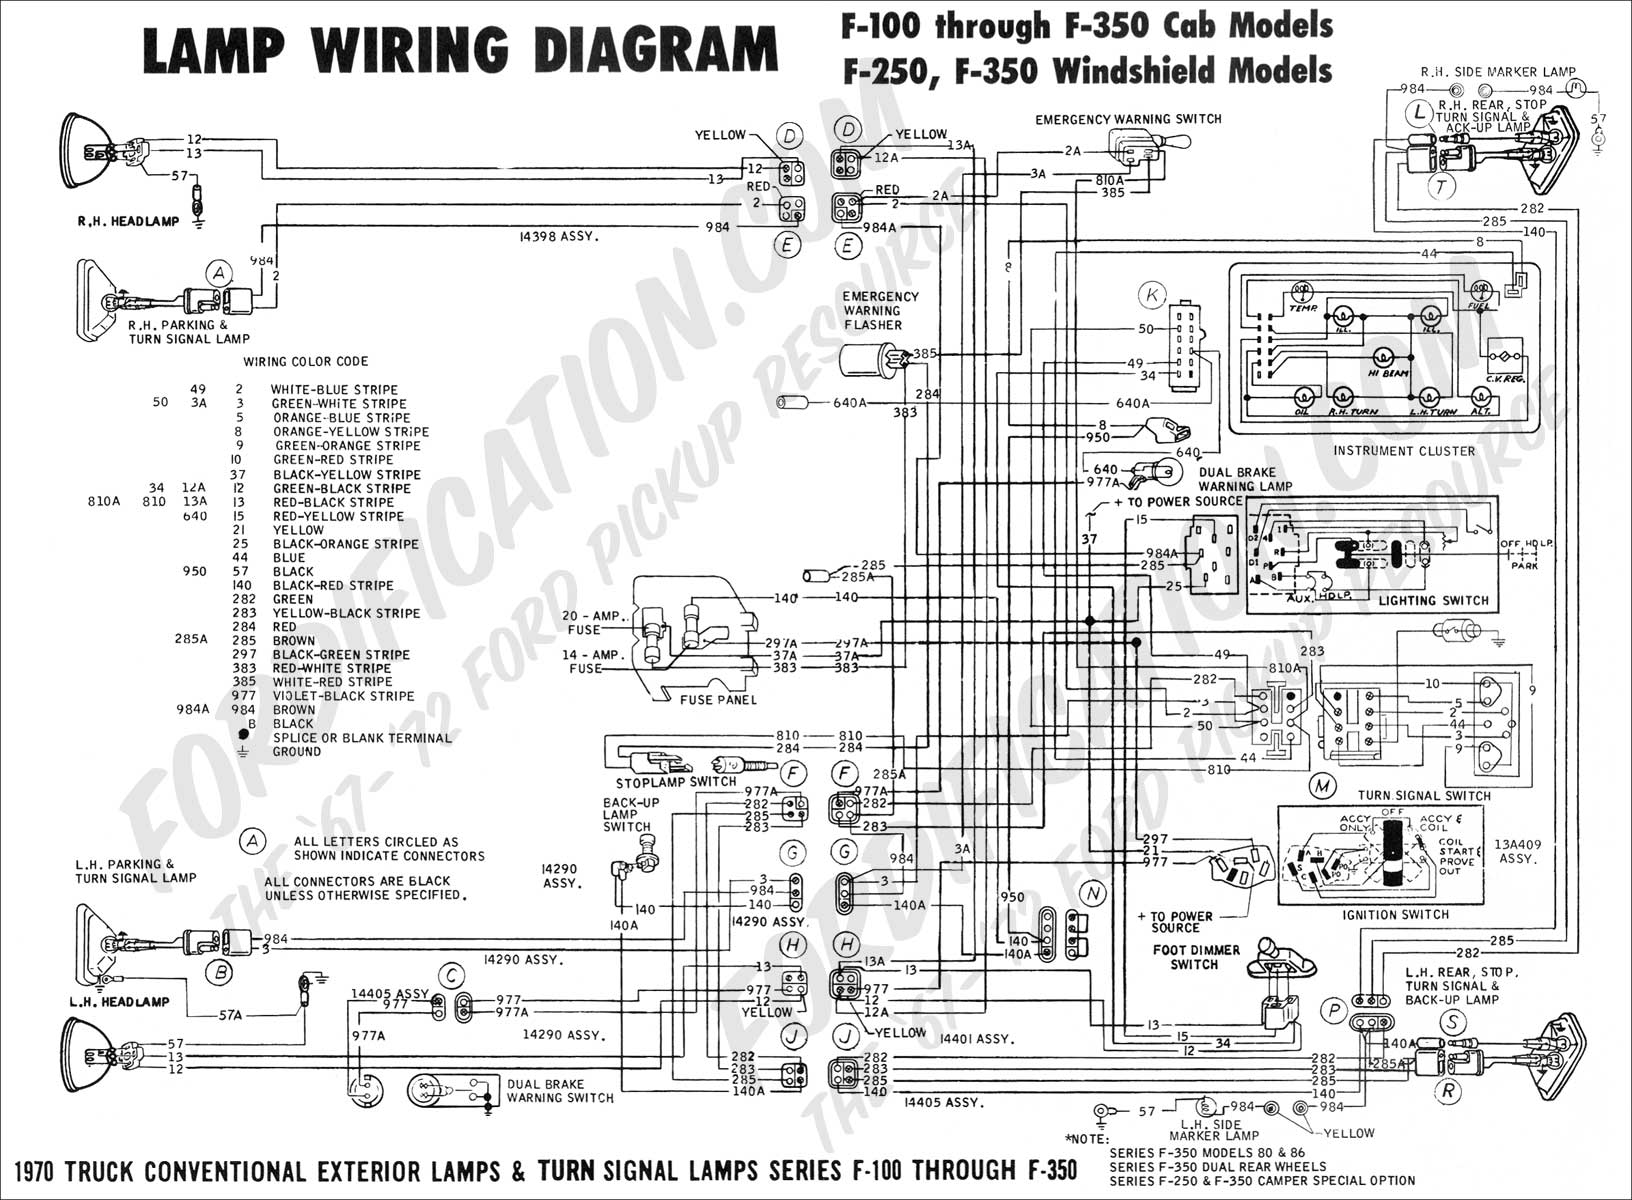 1991 ford mustang wiring diagrams